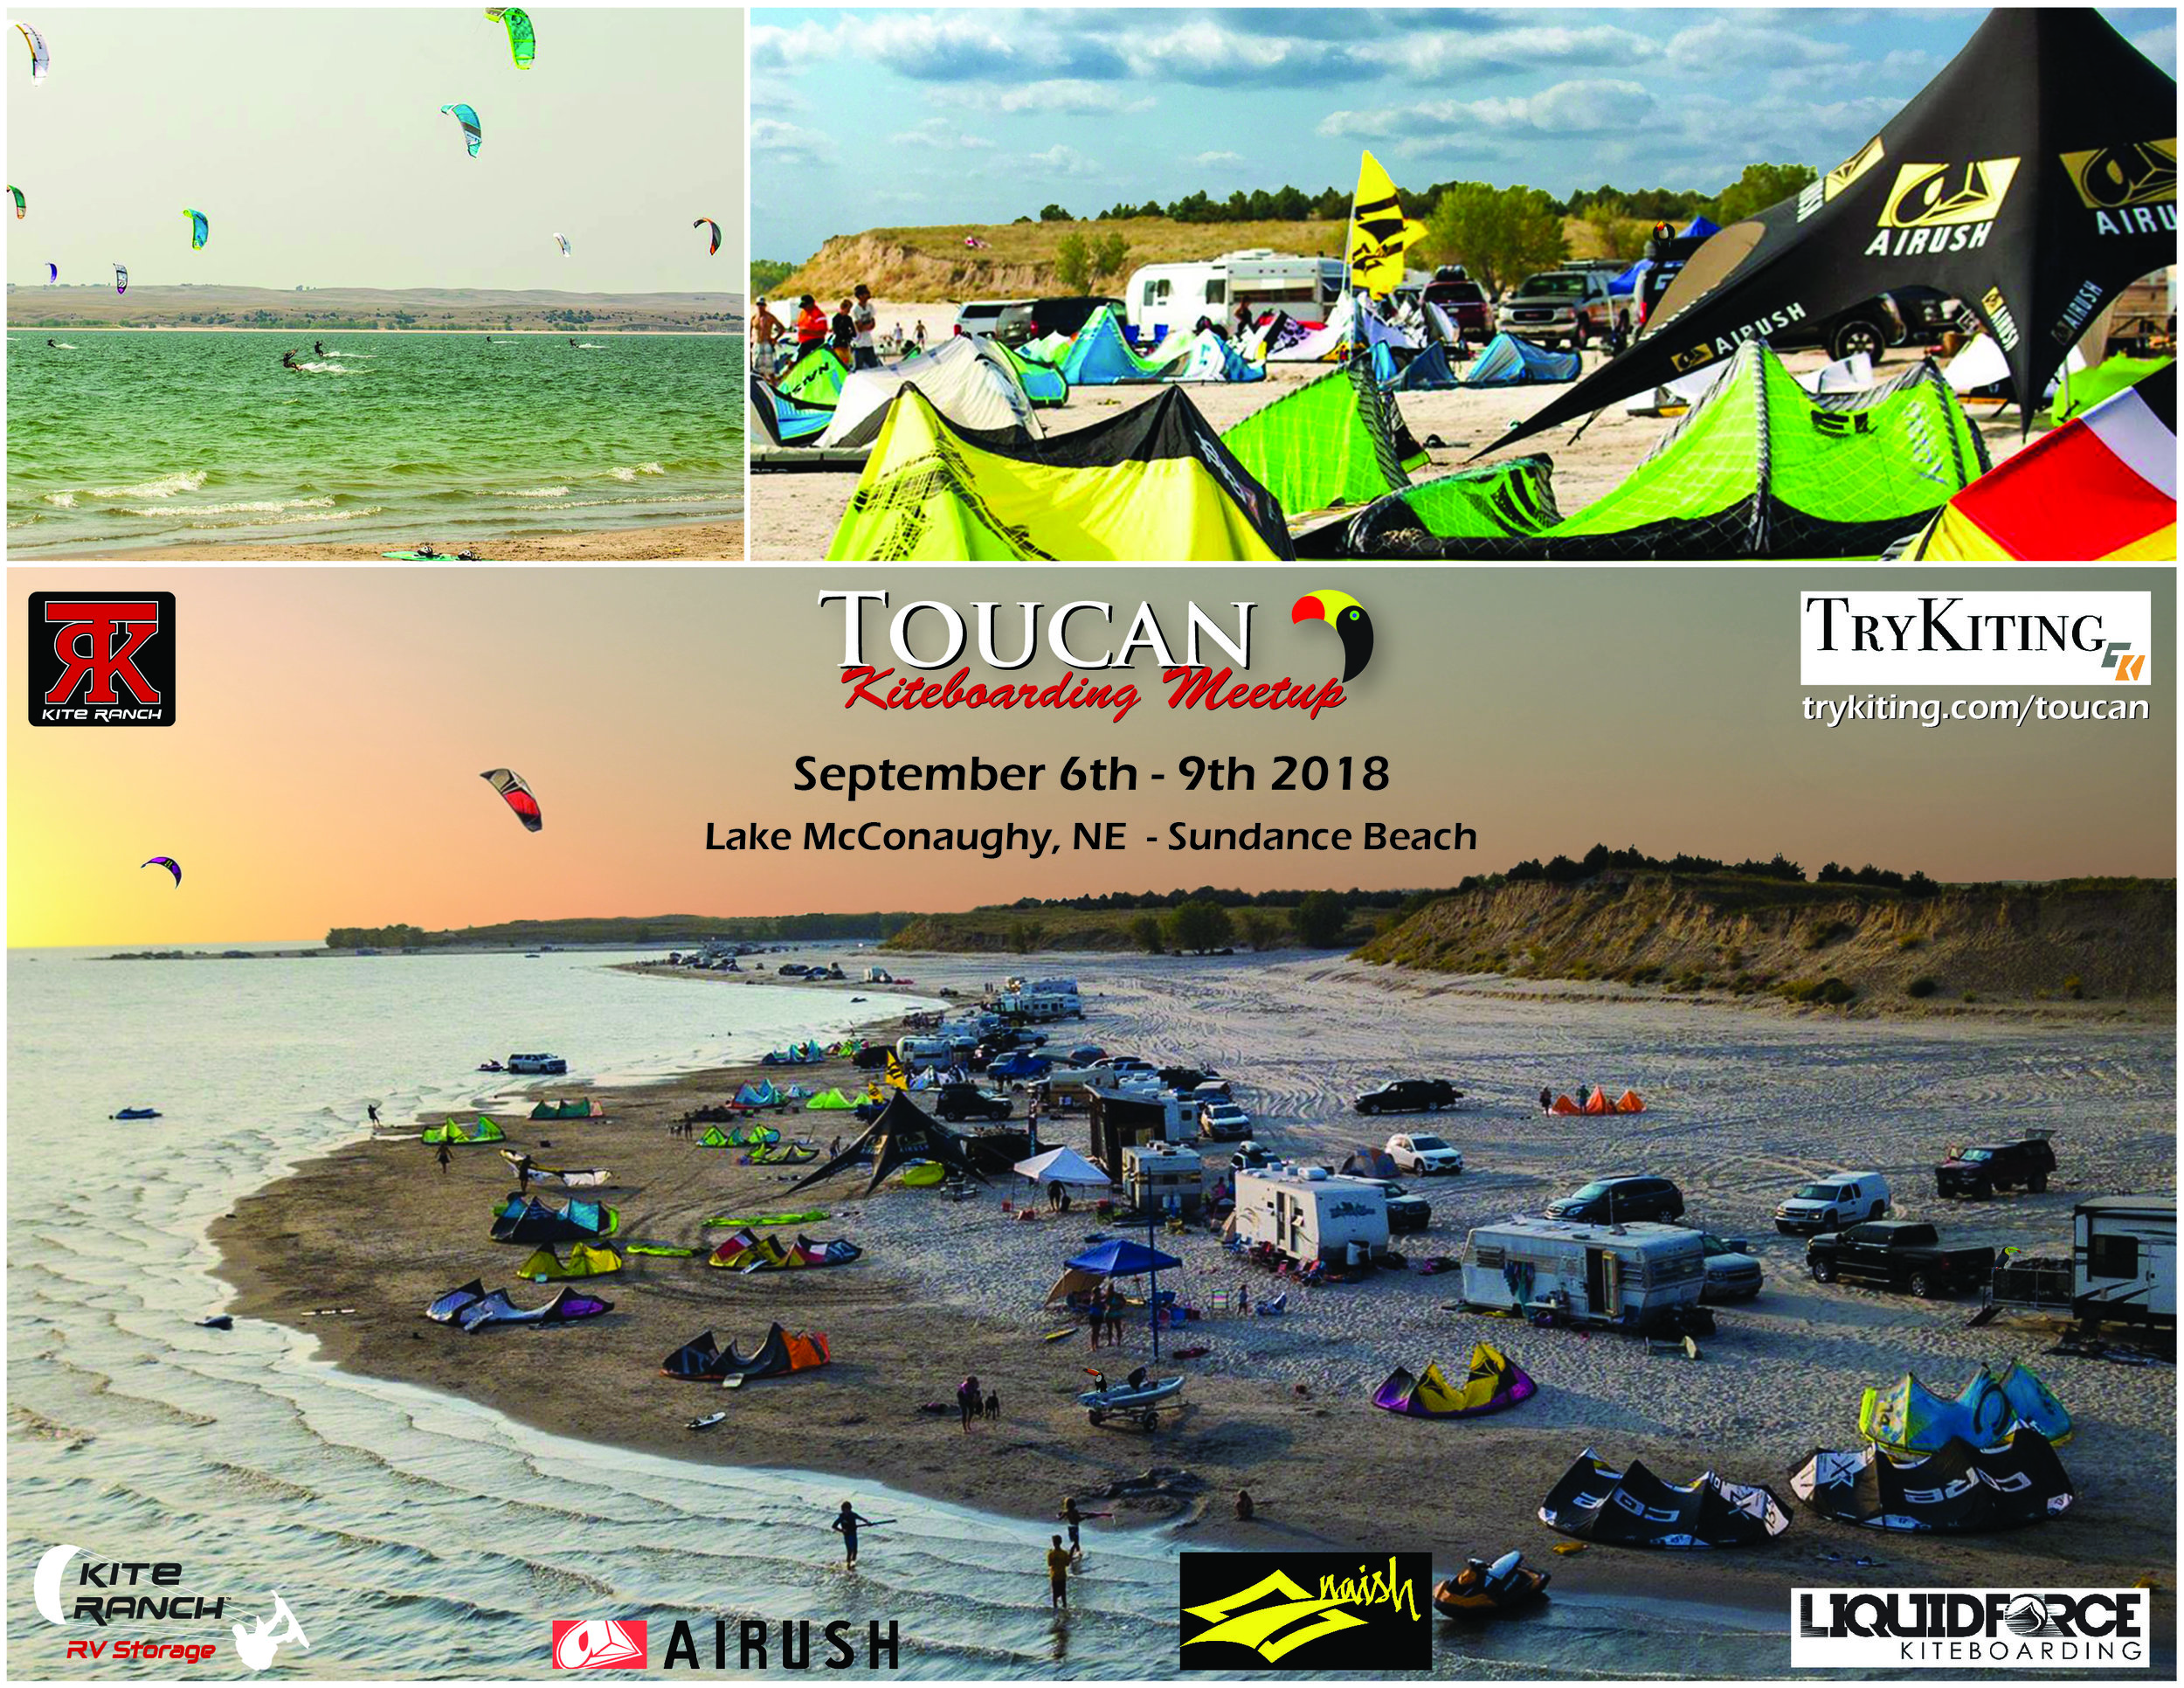 Toucan-Kiteboarding-Meetup-2018-01.jpg